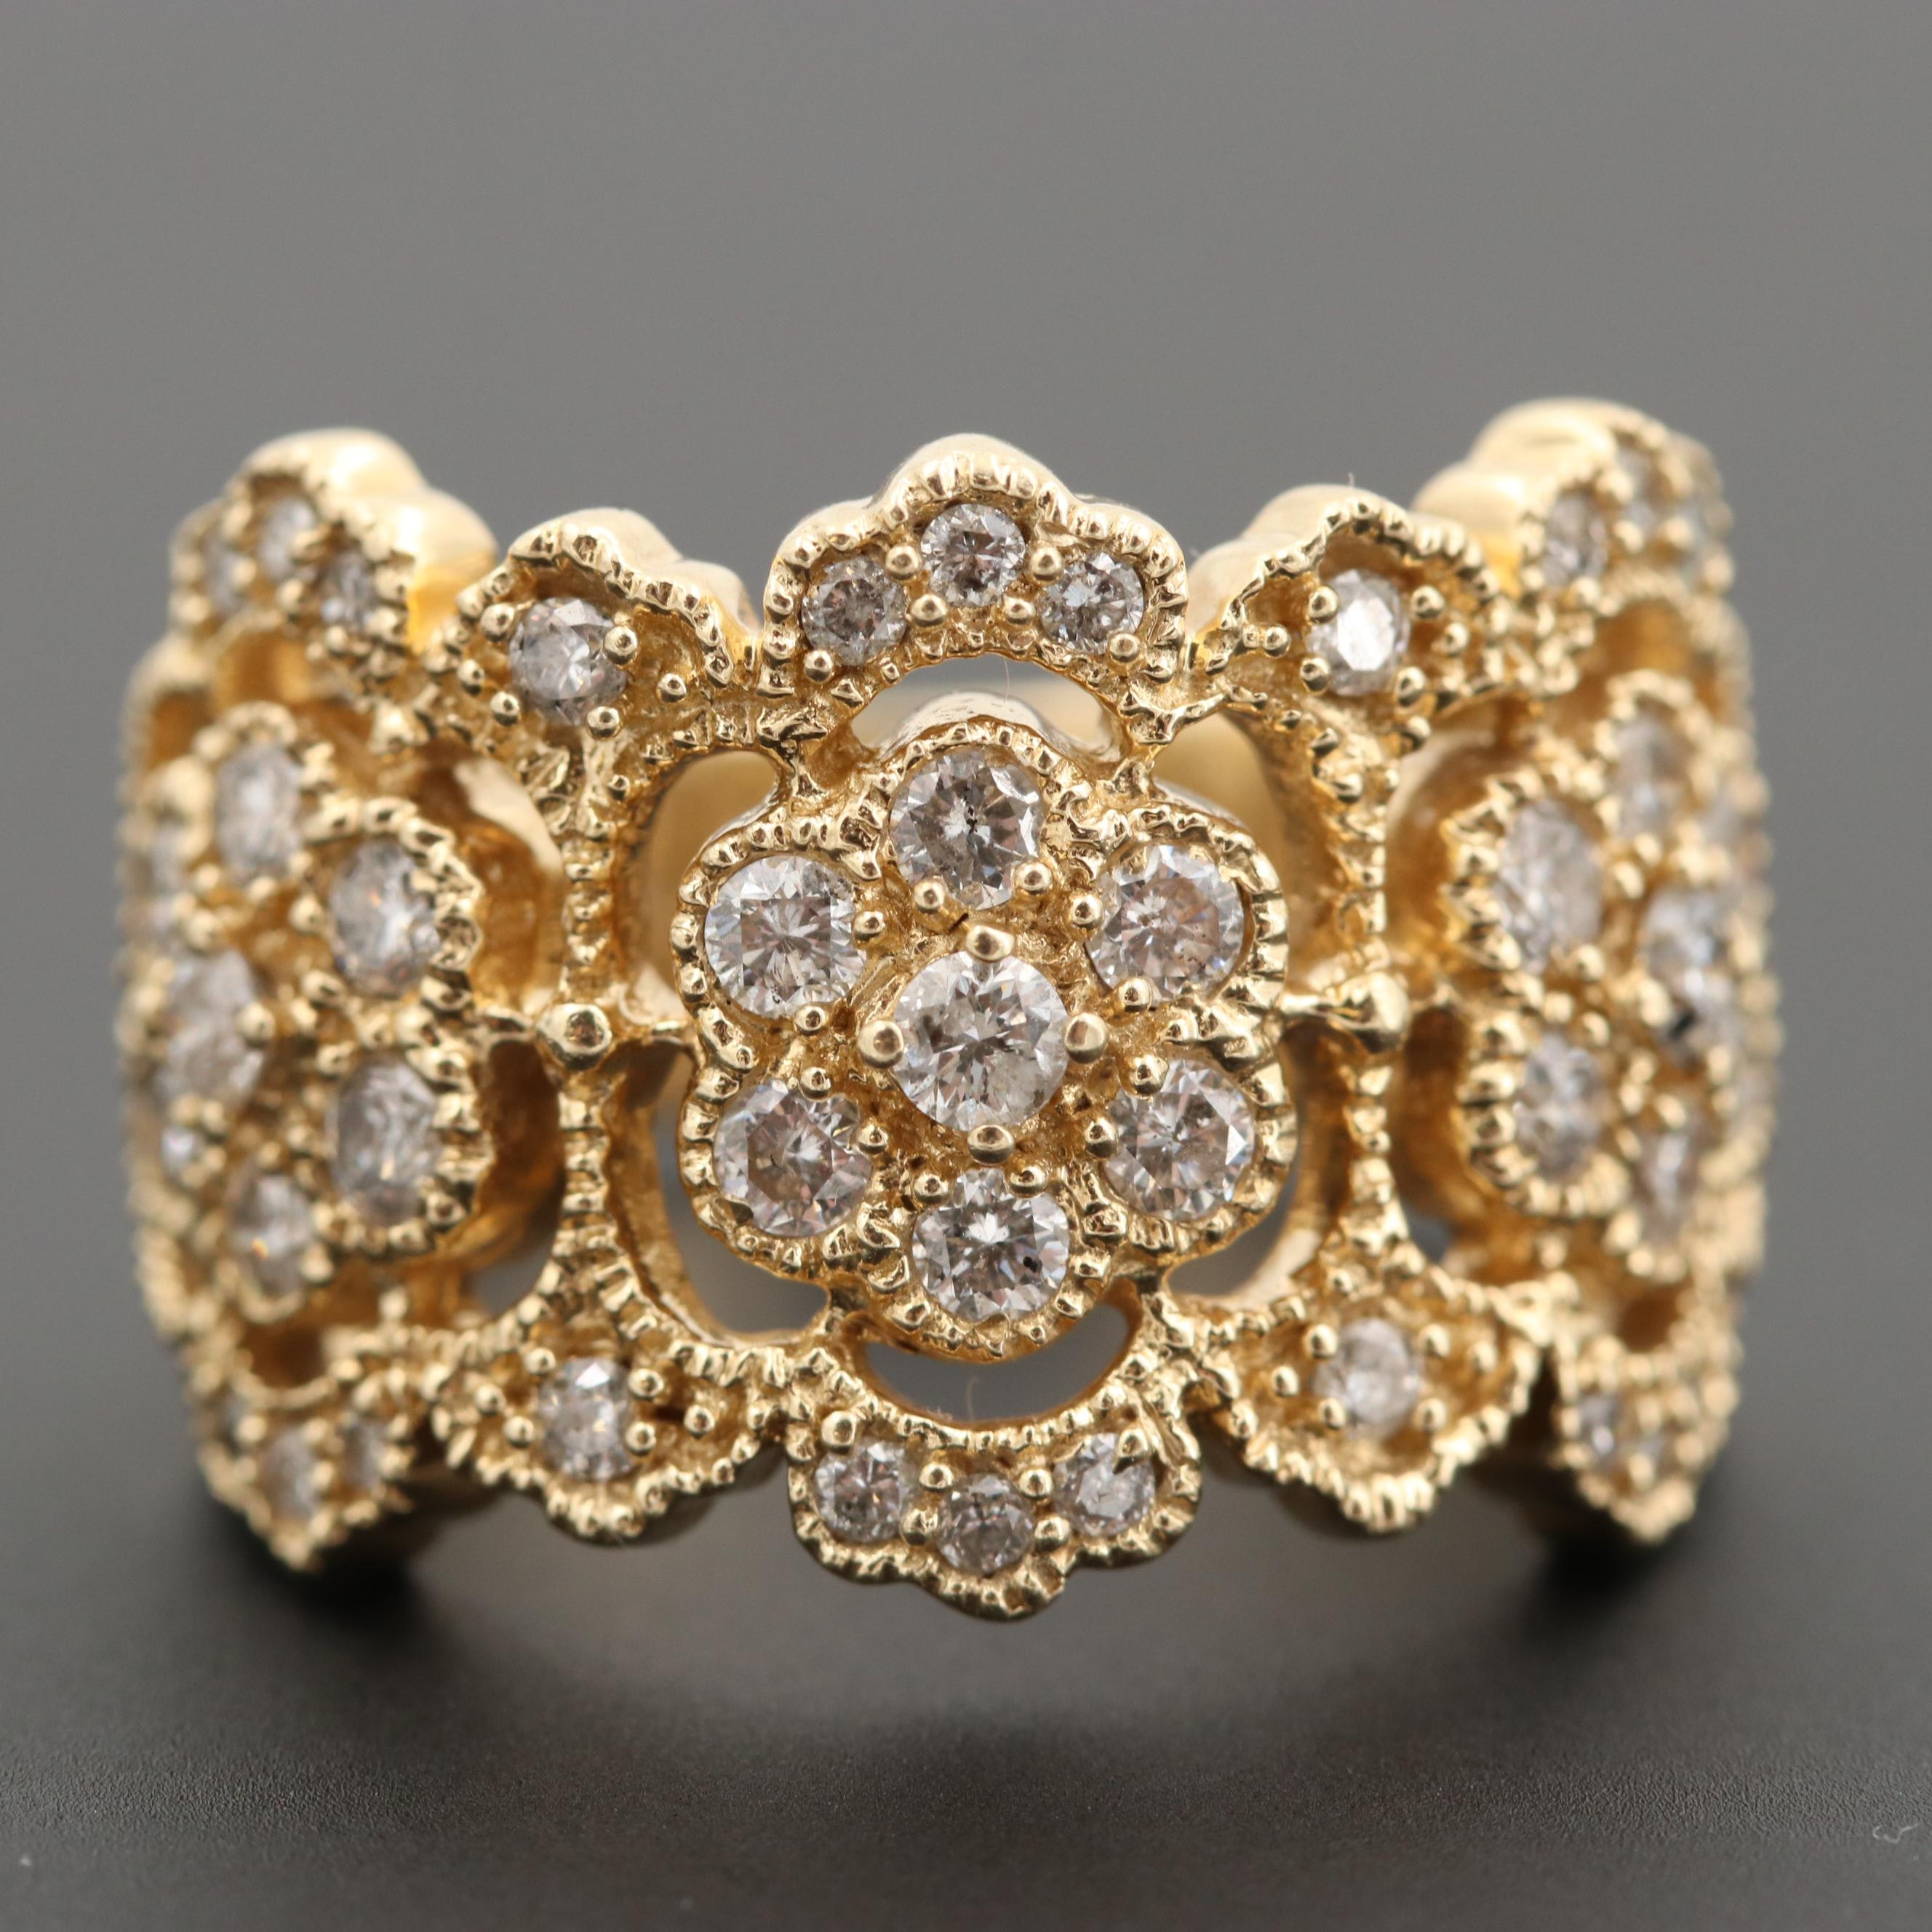 EFFY 14K Yellow Gold Diamond Floral Motif Ring